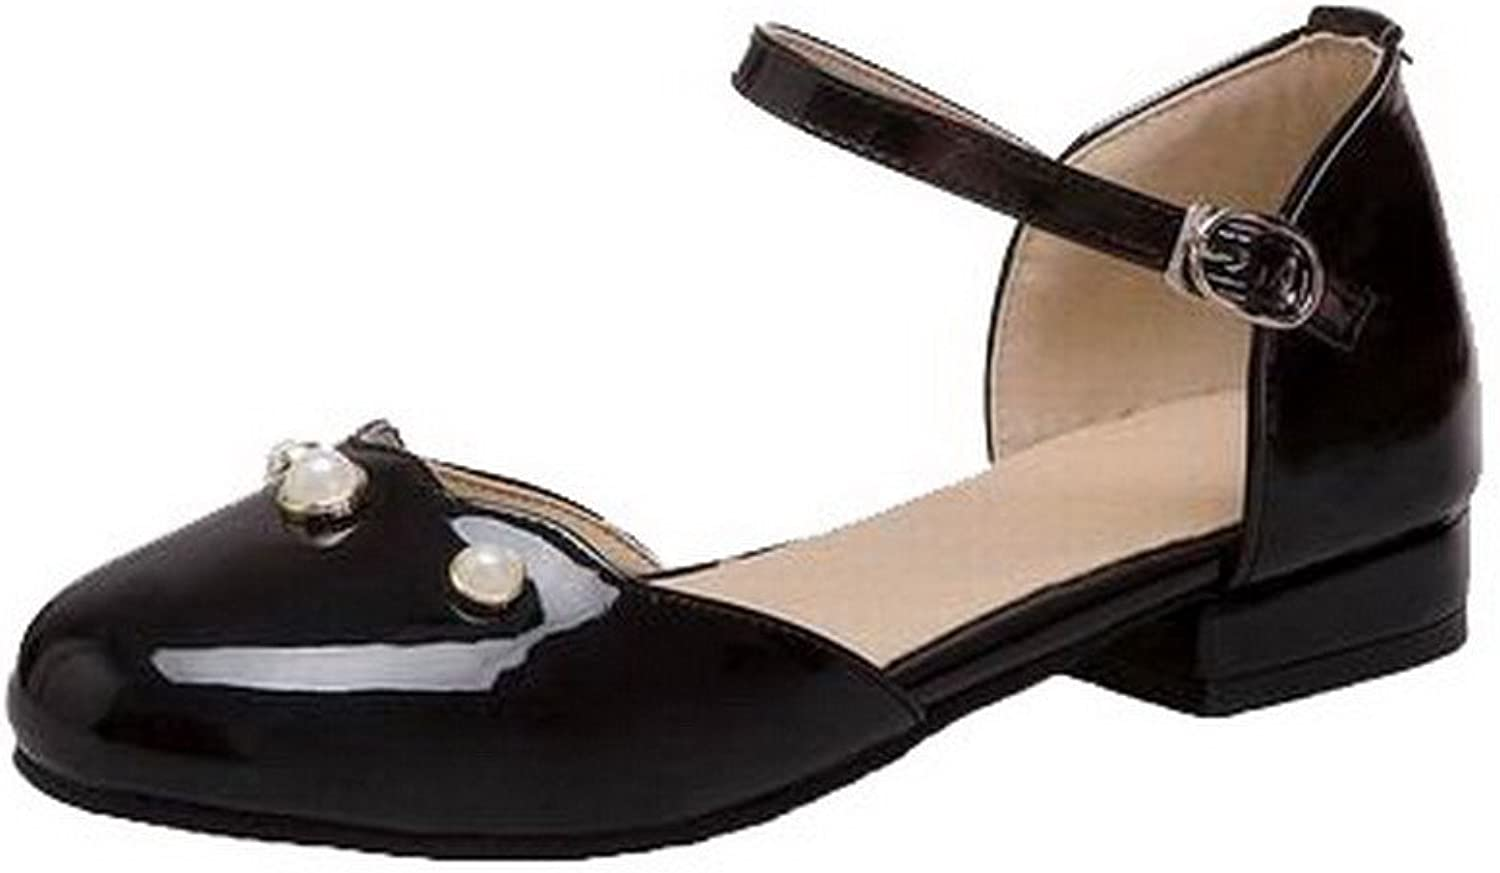 WeenFashion Women's Patent Leather Solid Buckle Closed-Toe Low-Heels Sandals